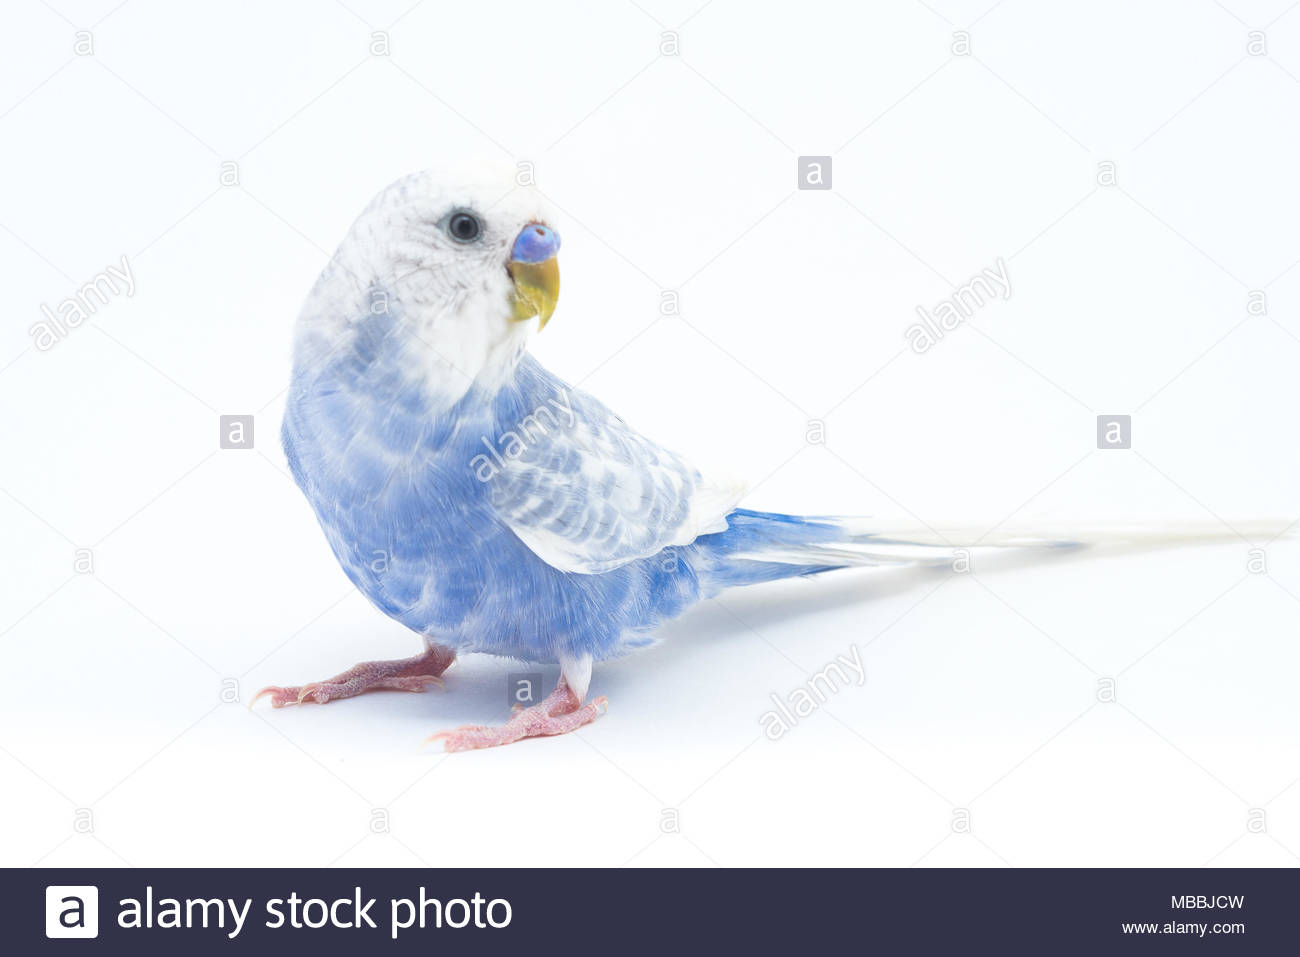 What is interesting wavy parrots, how to determine the age and gender 6